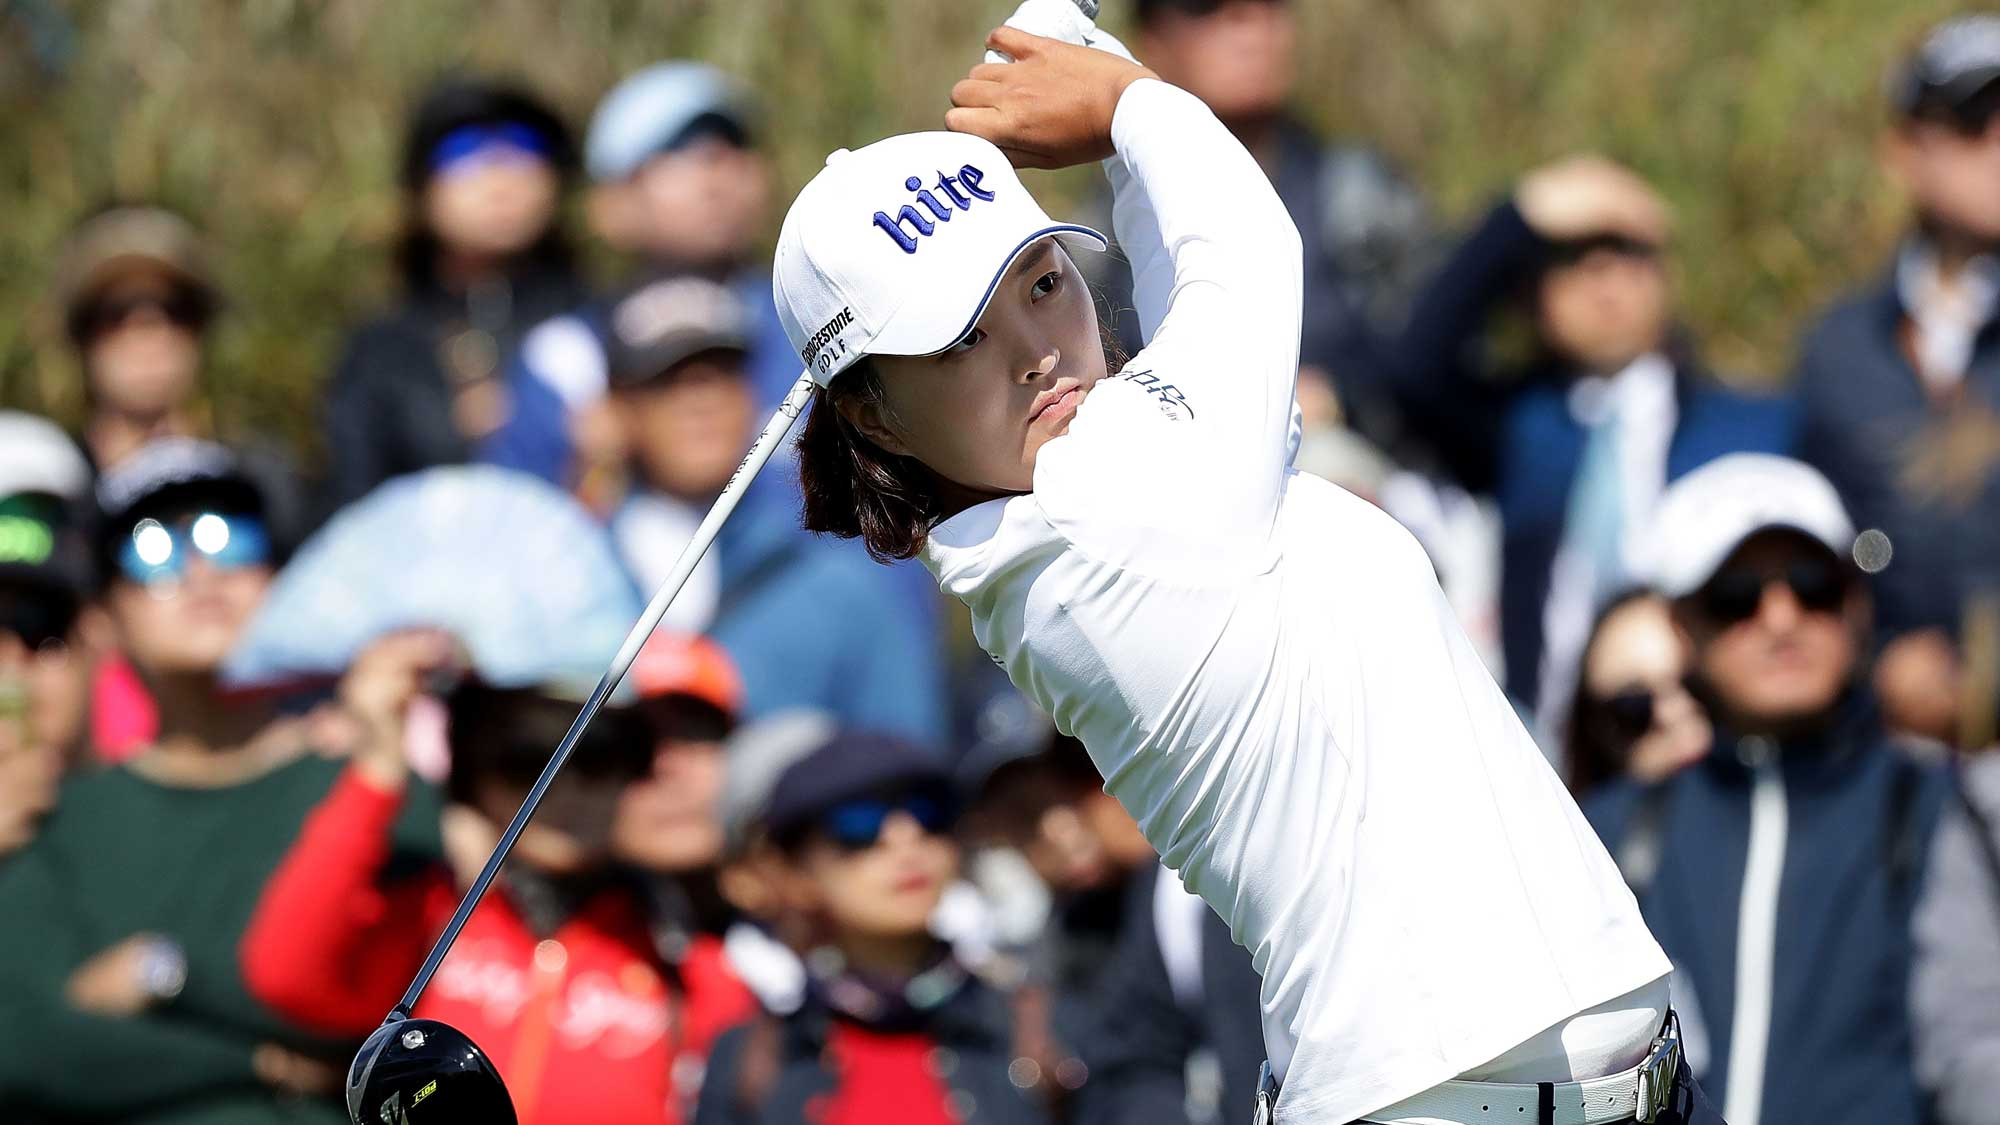 Jin-Young Ko of South Korea plays a tee shot on the 7th hole during the final round of the LPGA KEB Hana Bank Championship